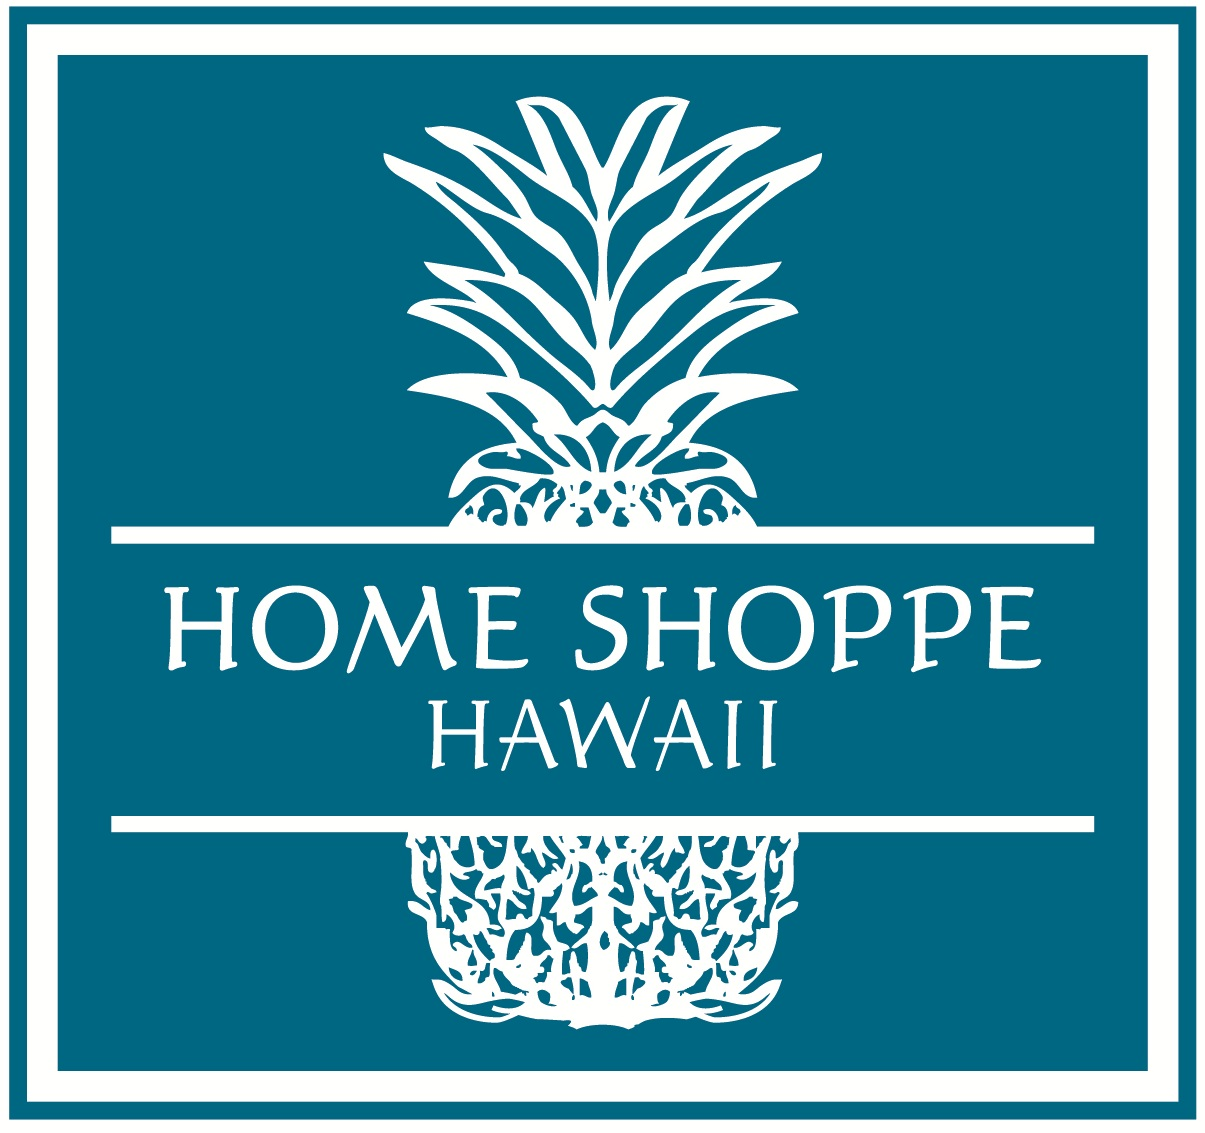 Home Shoppe Hawaii